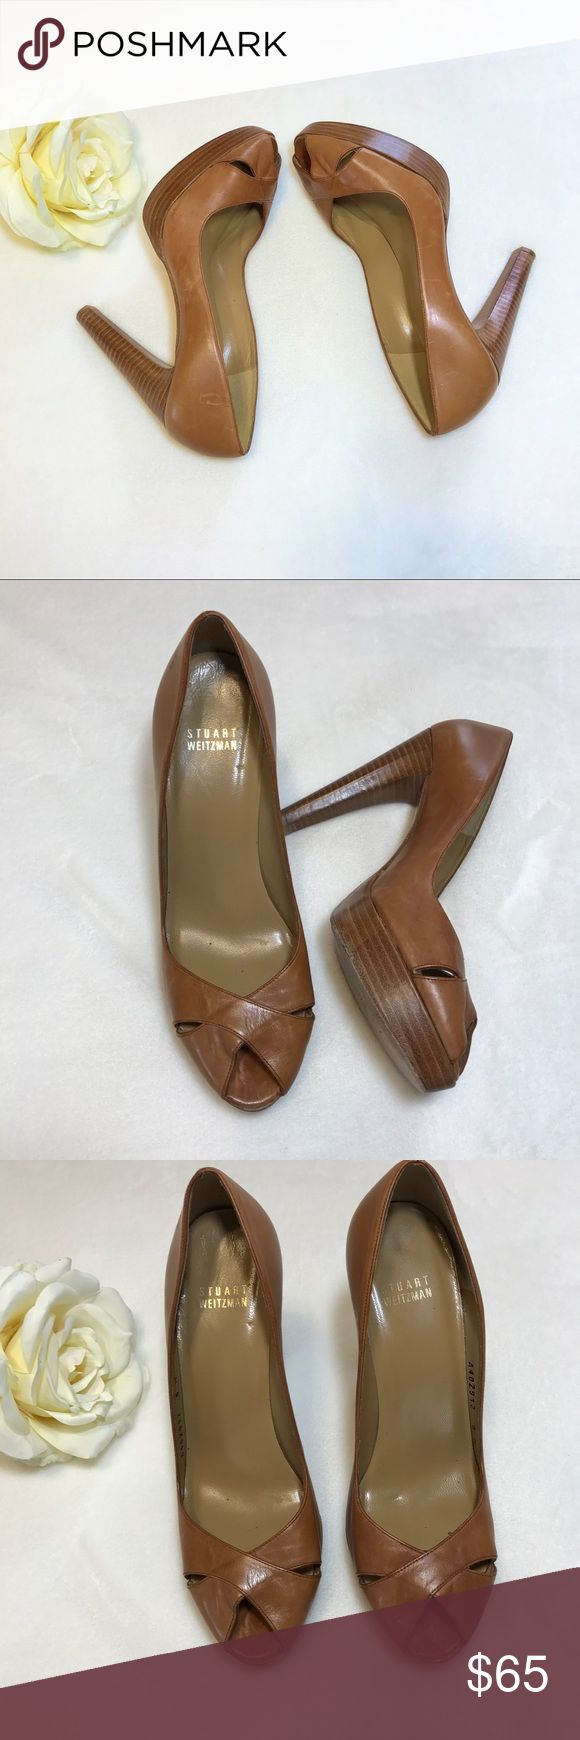 "Stuart Weitzman Brown Leather Peep Toe Heel Sandal Gorgeous pair of leather high heel sandals with peep toe opening. High arch and padded insole. Leather upper and sole.   Size 8 M   Heel Height 4.75"", with 1"" platform around toe  Condition  Excellent condition preowned. Small marks here and there. No flaws noted. Stuart Weitzman Shoes Heels"